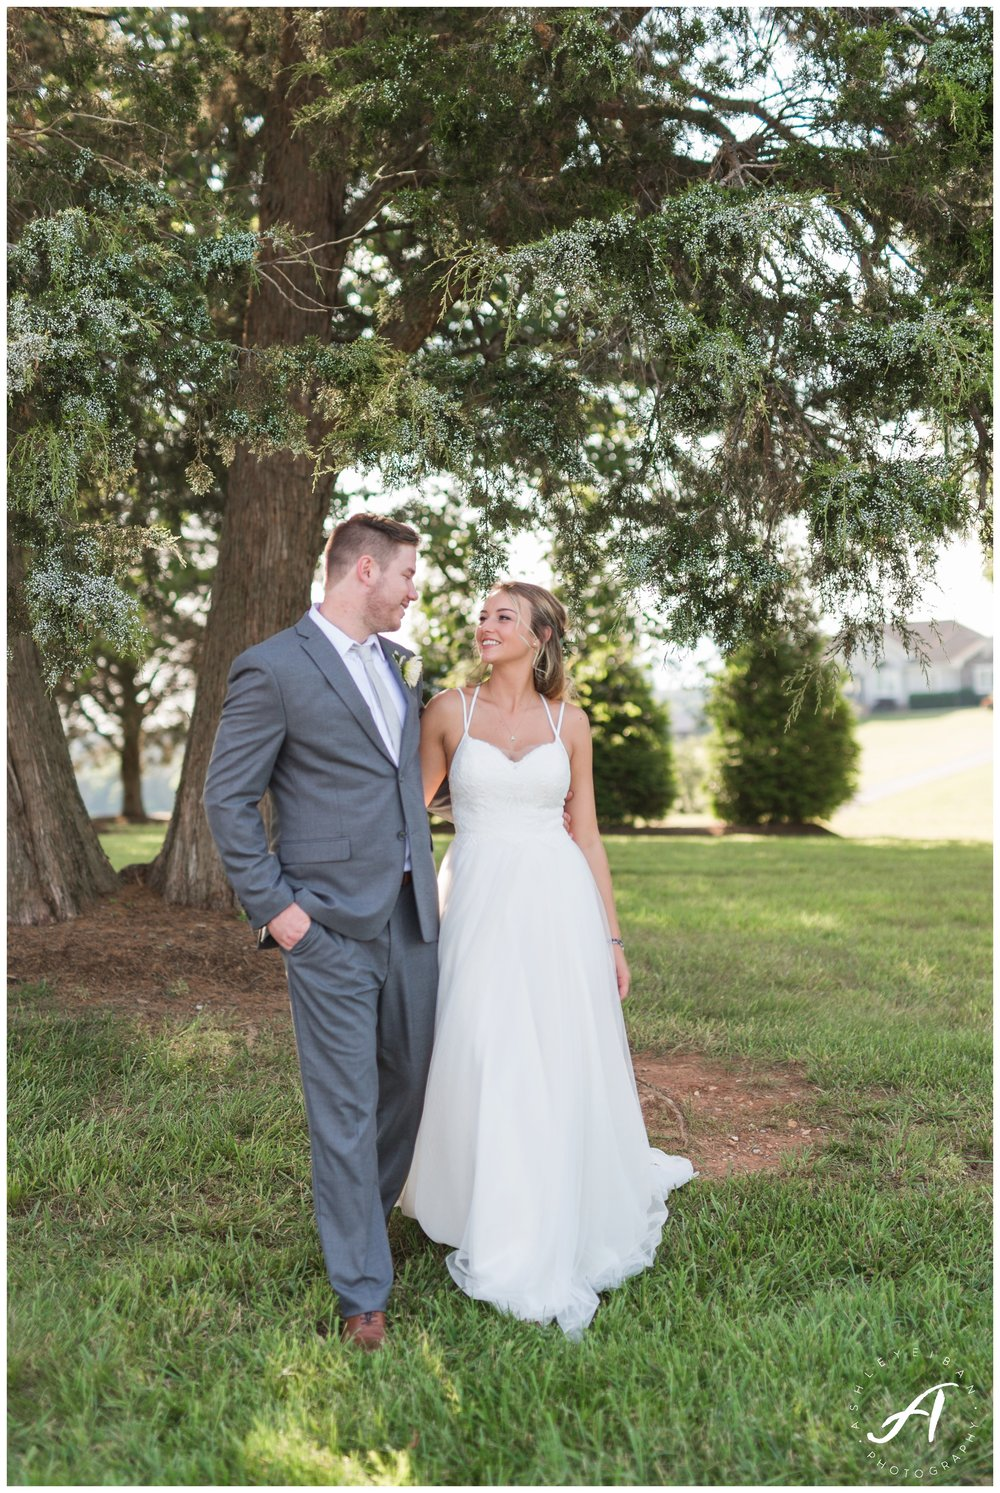 Central Virginia, Lynchburg Wedding Photographer || Trivium Estate Wedding in Forest, Virginia || www.ashleyeiban.com